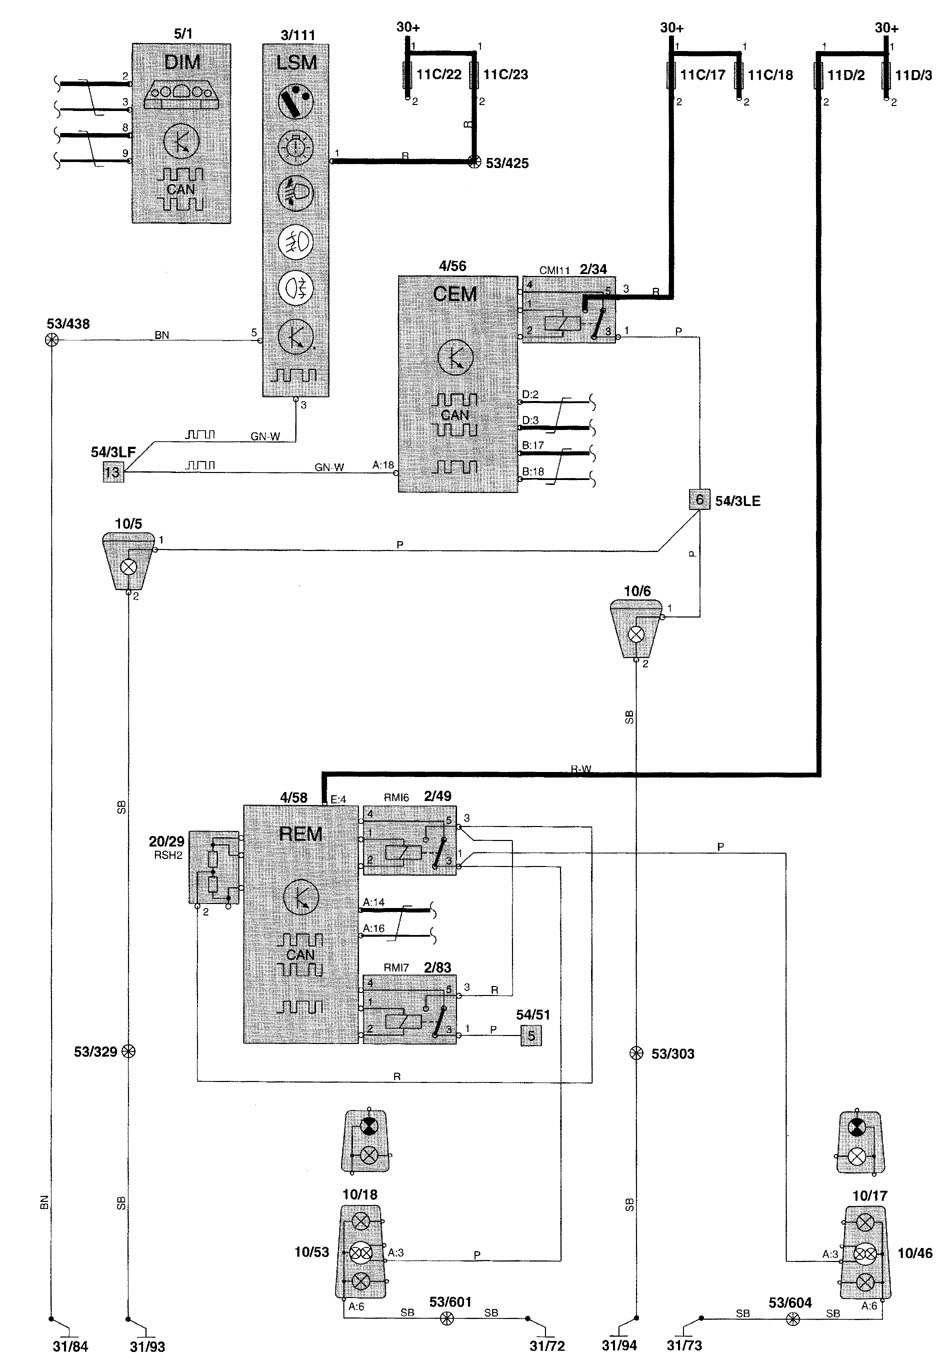 2001 Volvo S80 Fan Wiring Diagram Library 2000 S70 V70 2002 Fog Lamp Diy Enthusiasts S60 Fuse